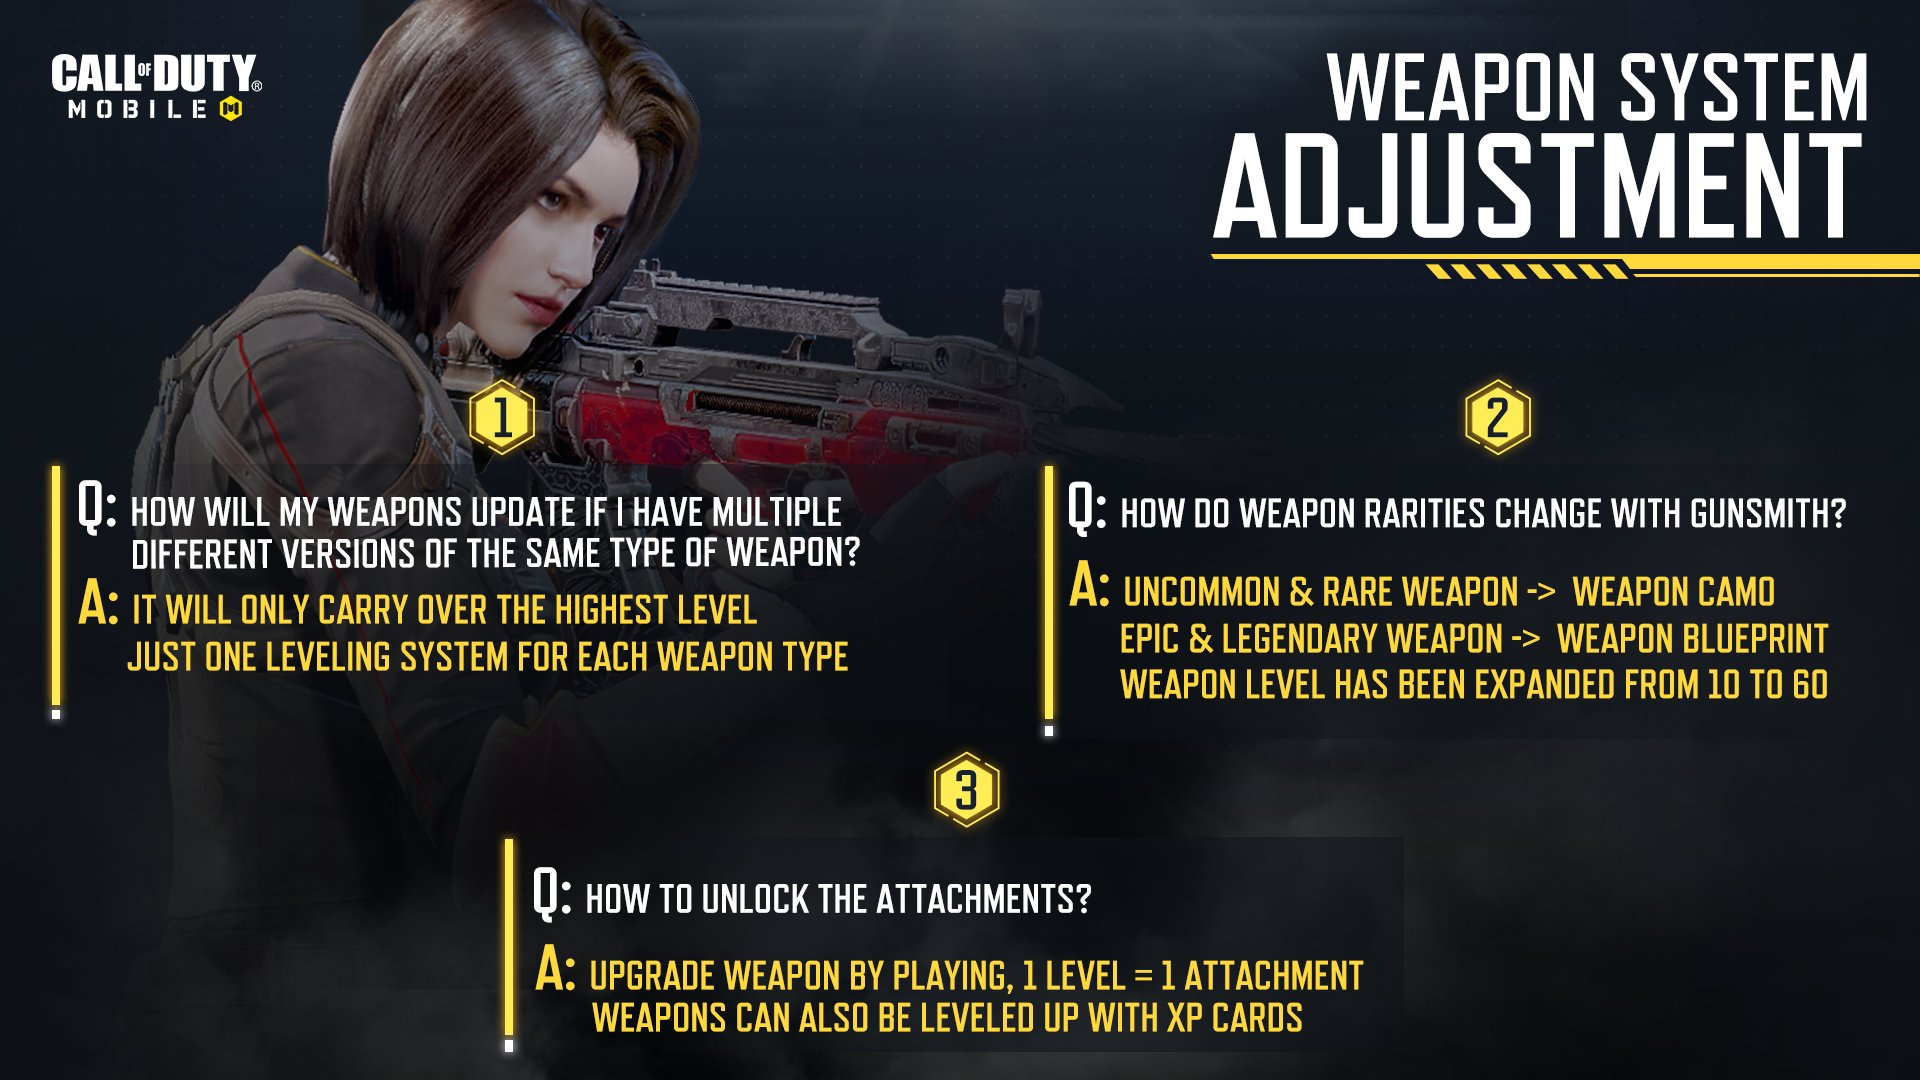 Call of Duty Weapon System